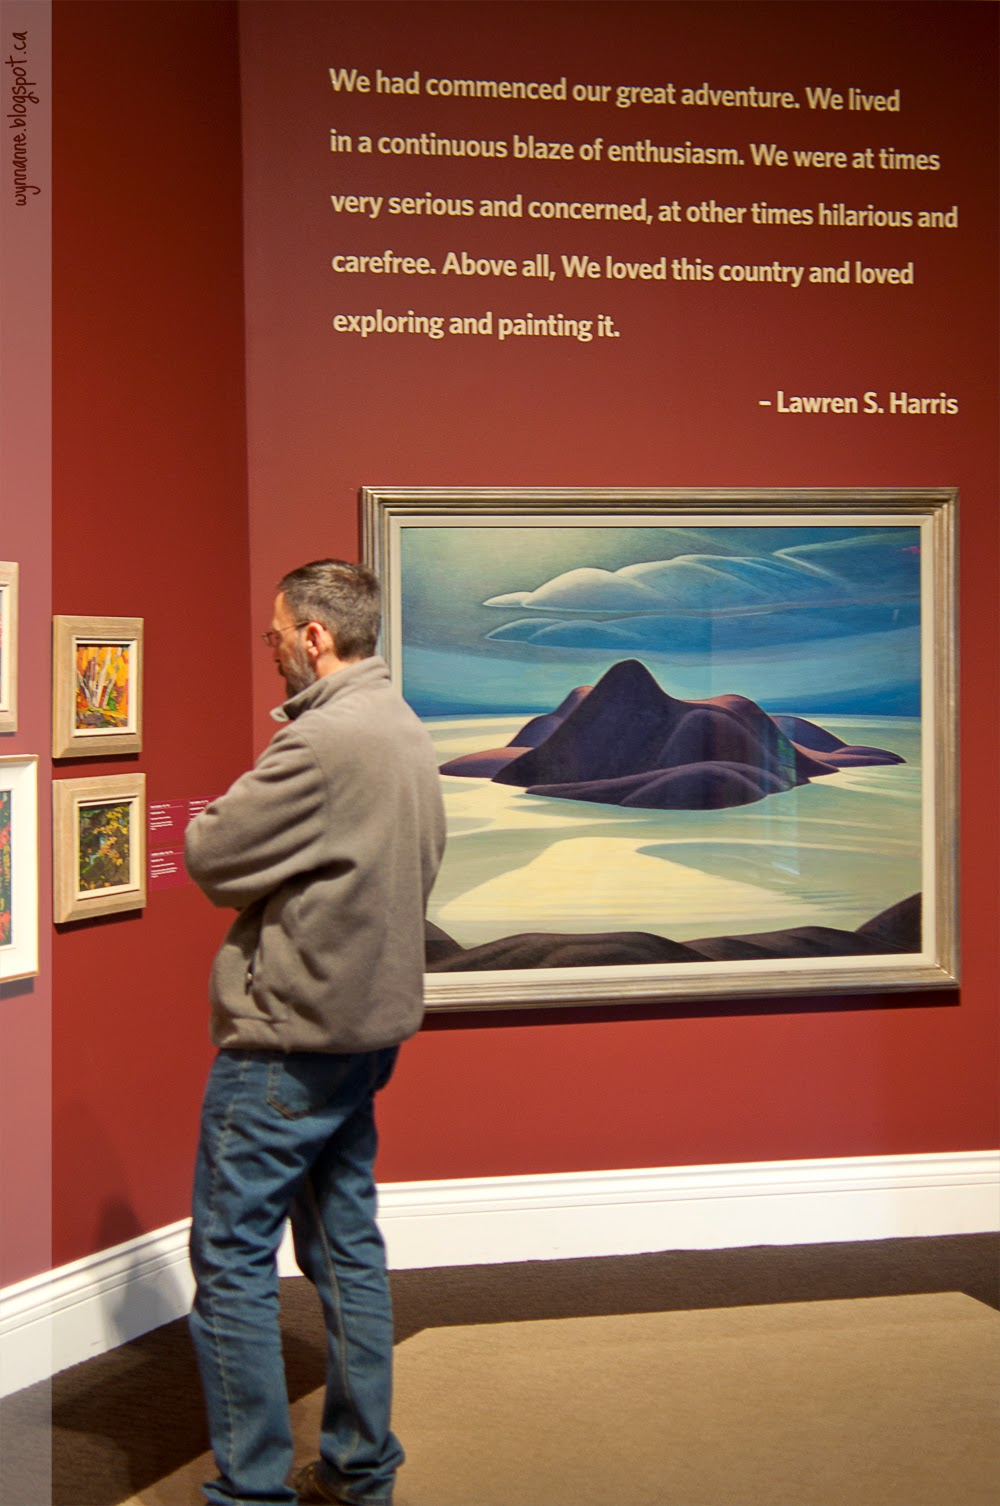 "Lawren Harris quote: ""We had commenced our great adventure. We lived in a continuous blaze of enthusiasm. We were at times very serious and concerned, at other times hilarious and carefree. Above all, we loved this country and loved exploring and painting it."""